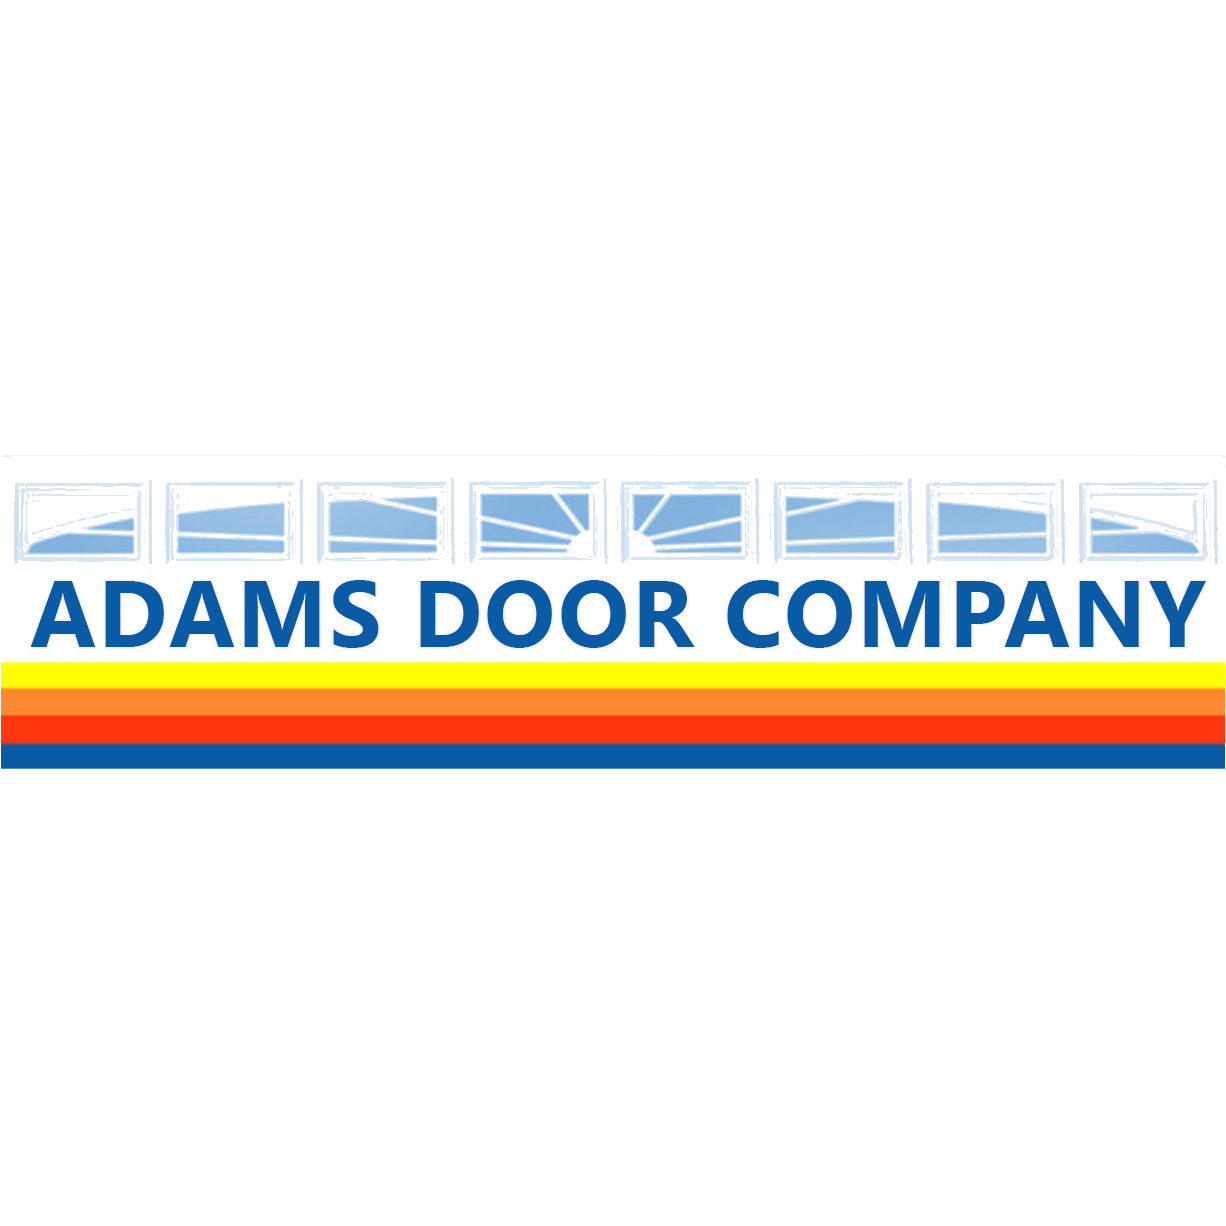 Adams Door Company